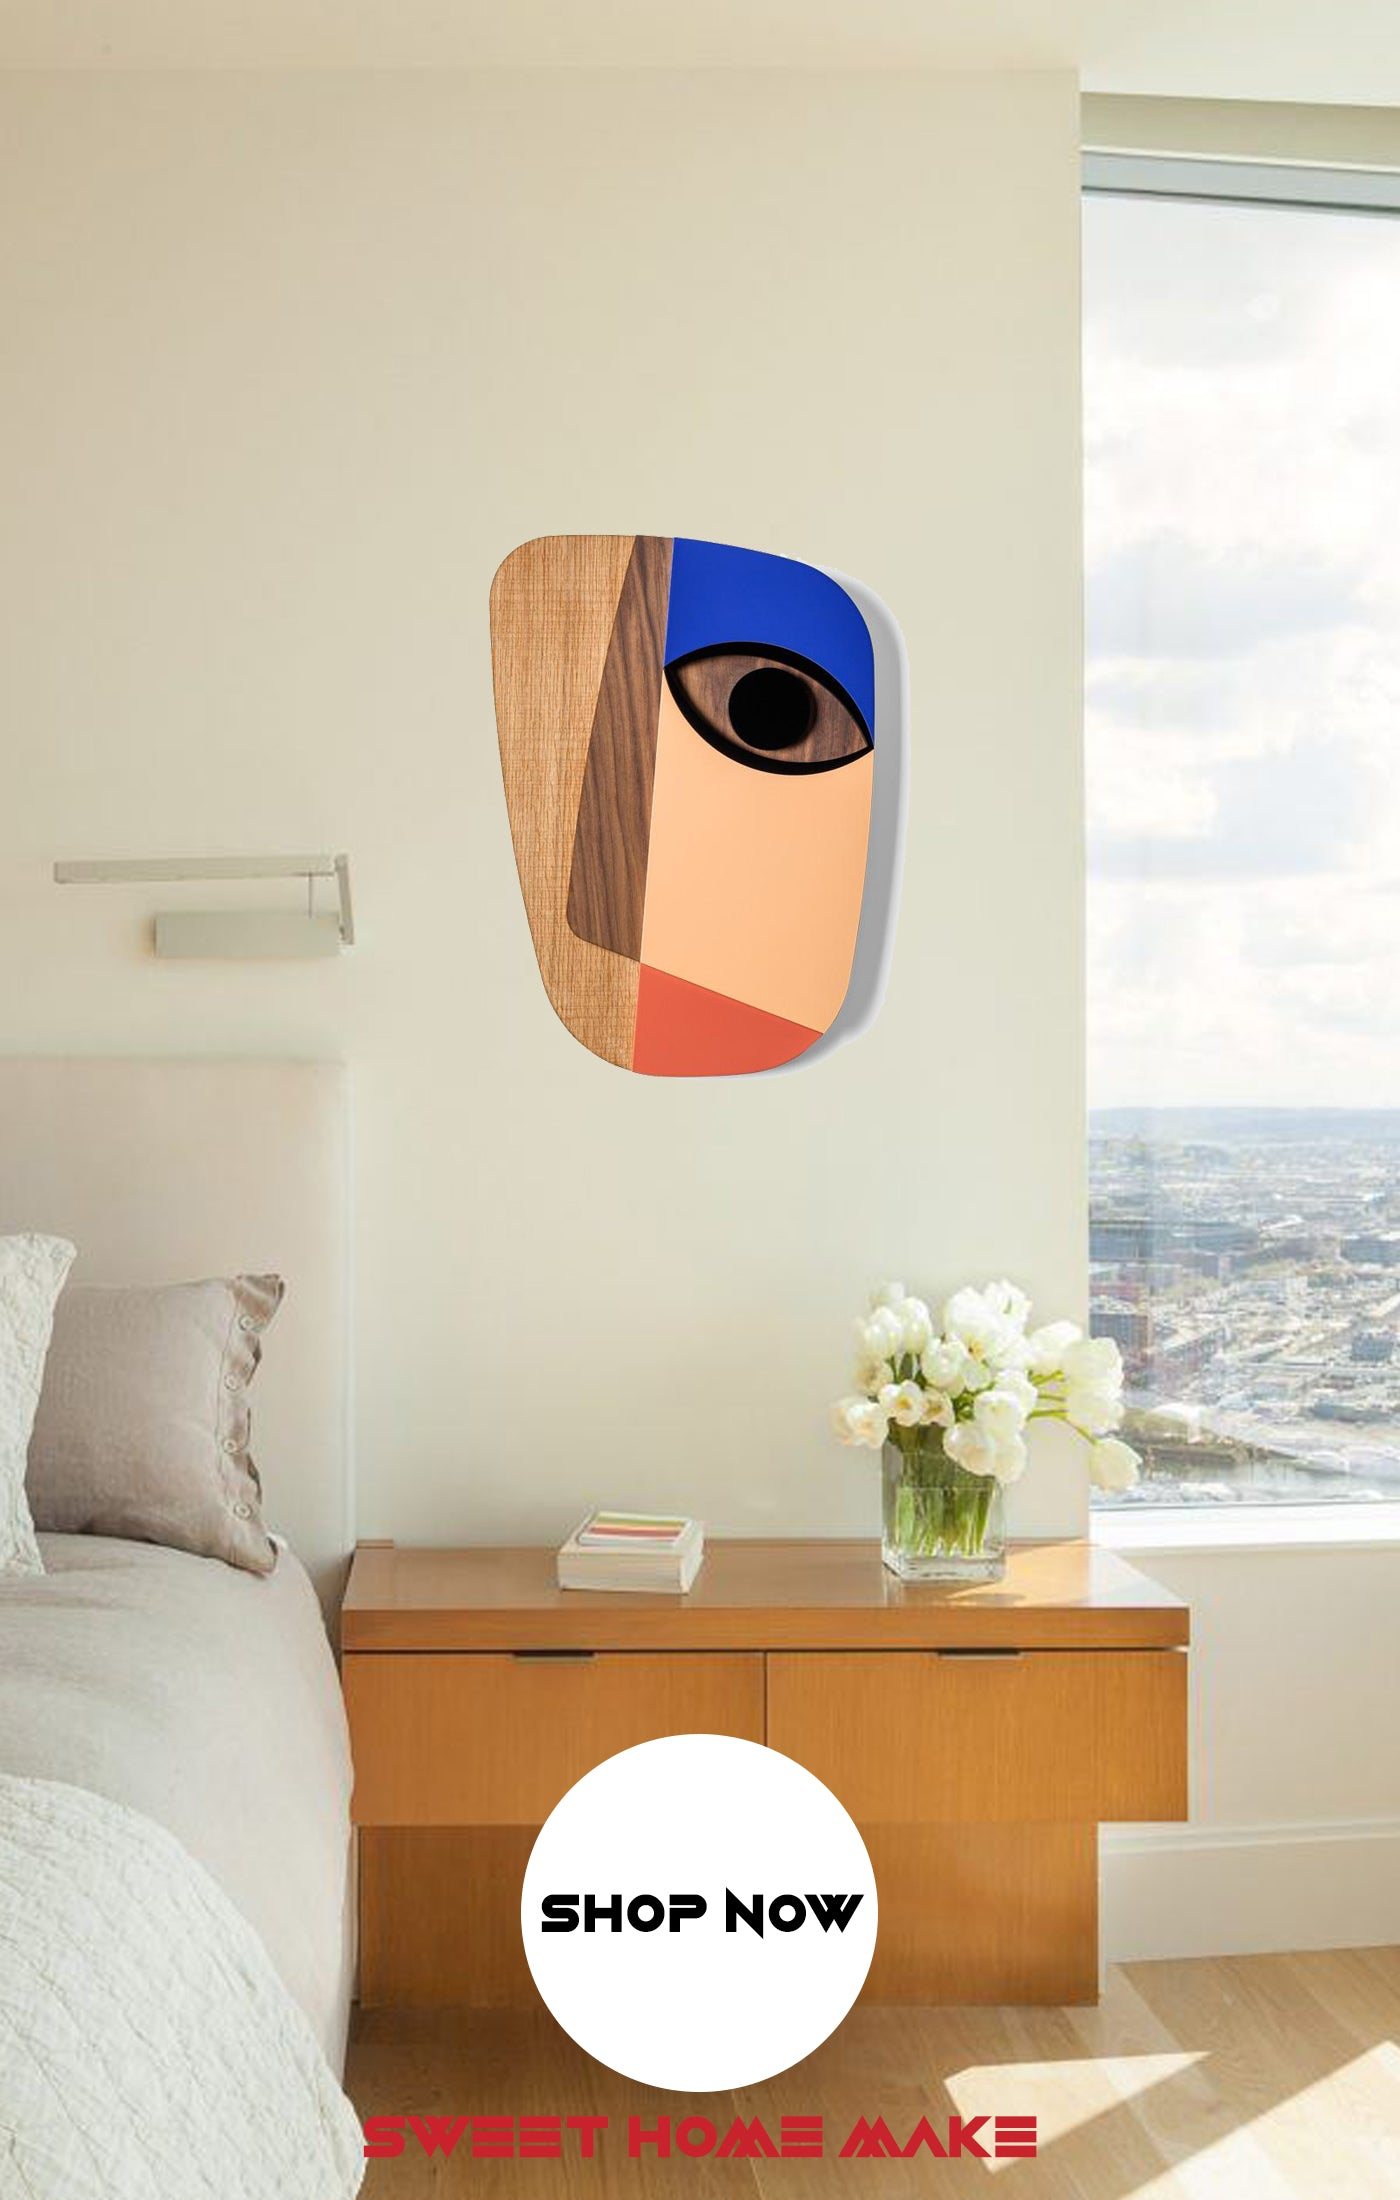 Abstract Modern Wall Art at the Bedroom Wall Decor